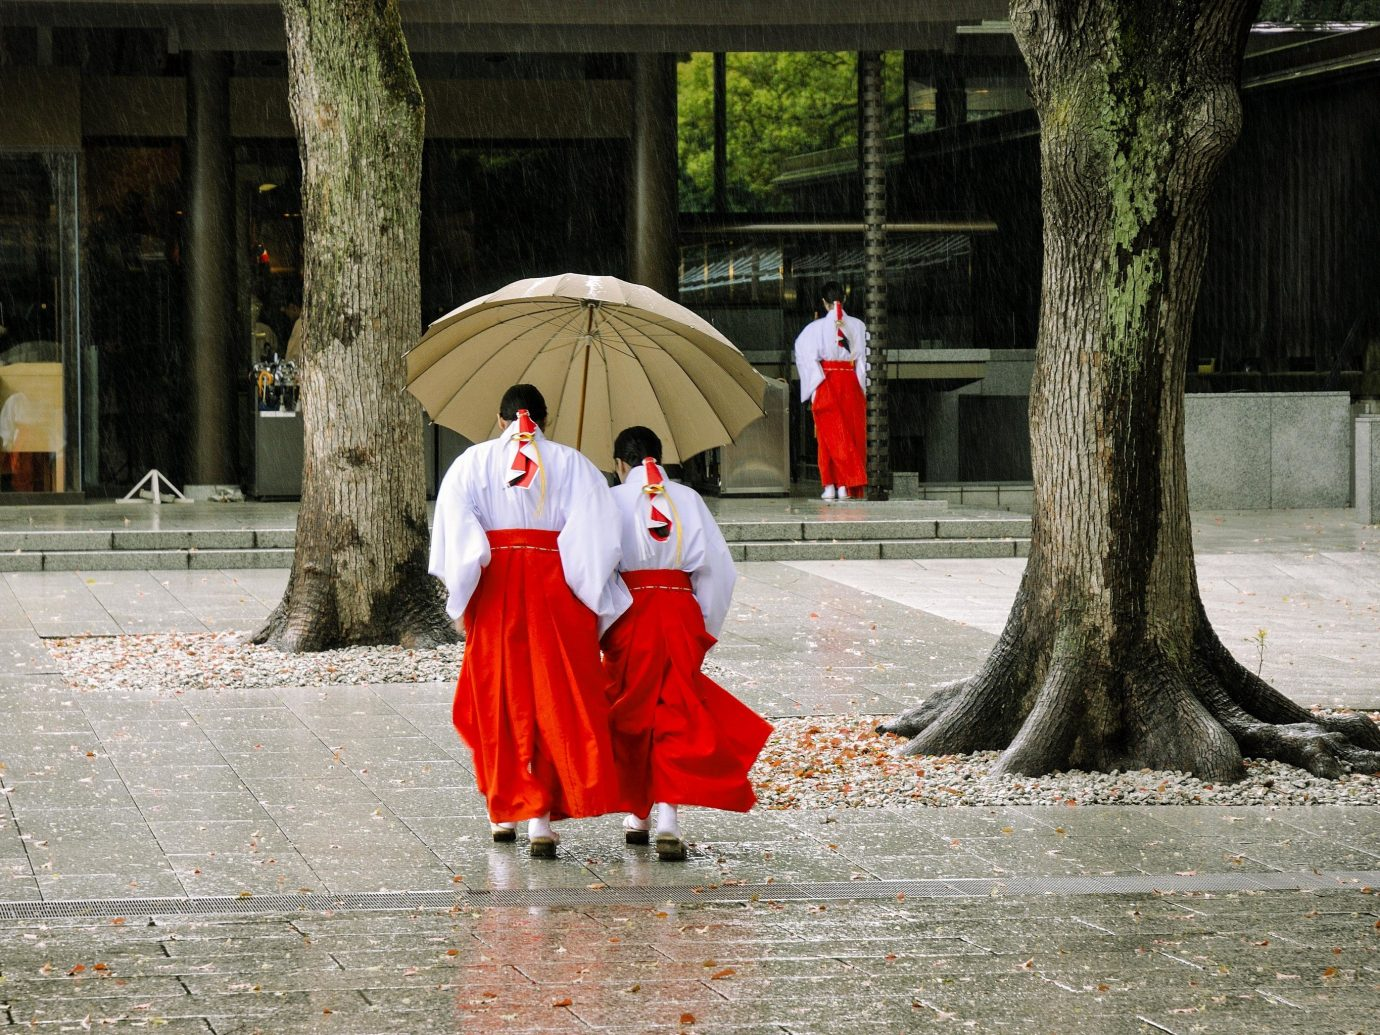 Trip Ideas outdoor ground red street temple dress tradition recreation tree girl fun monk coat